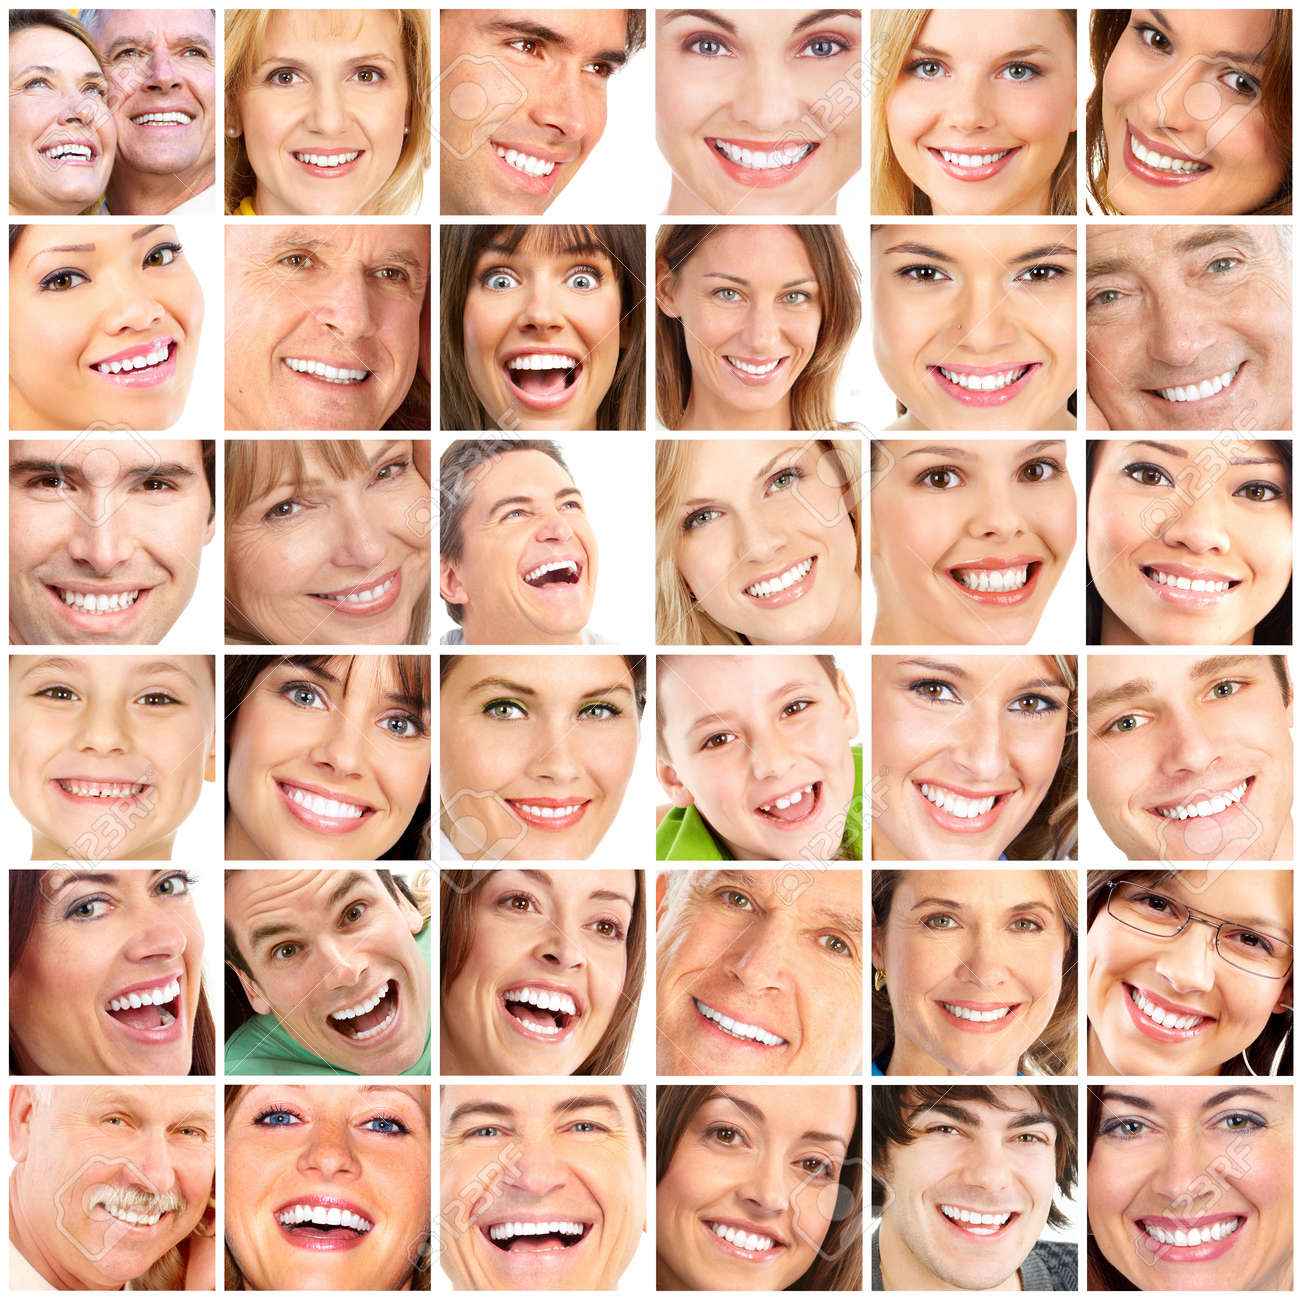 Faces of smiling people. Teeth care. Smile Stock Photo - 7317275